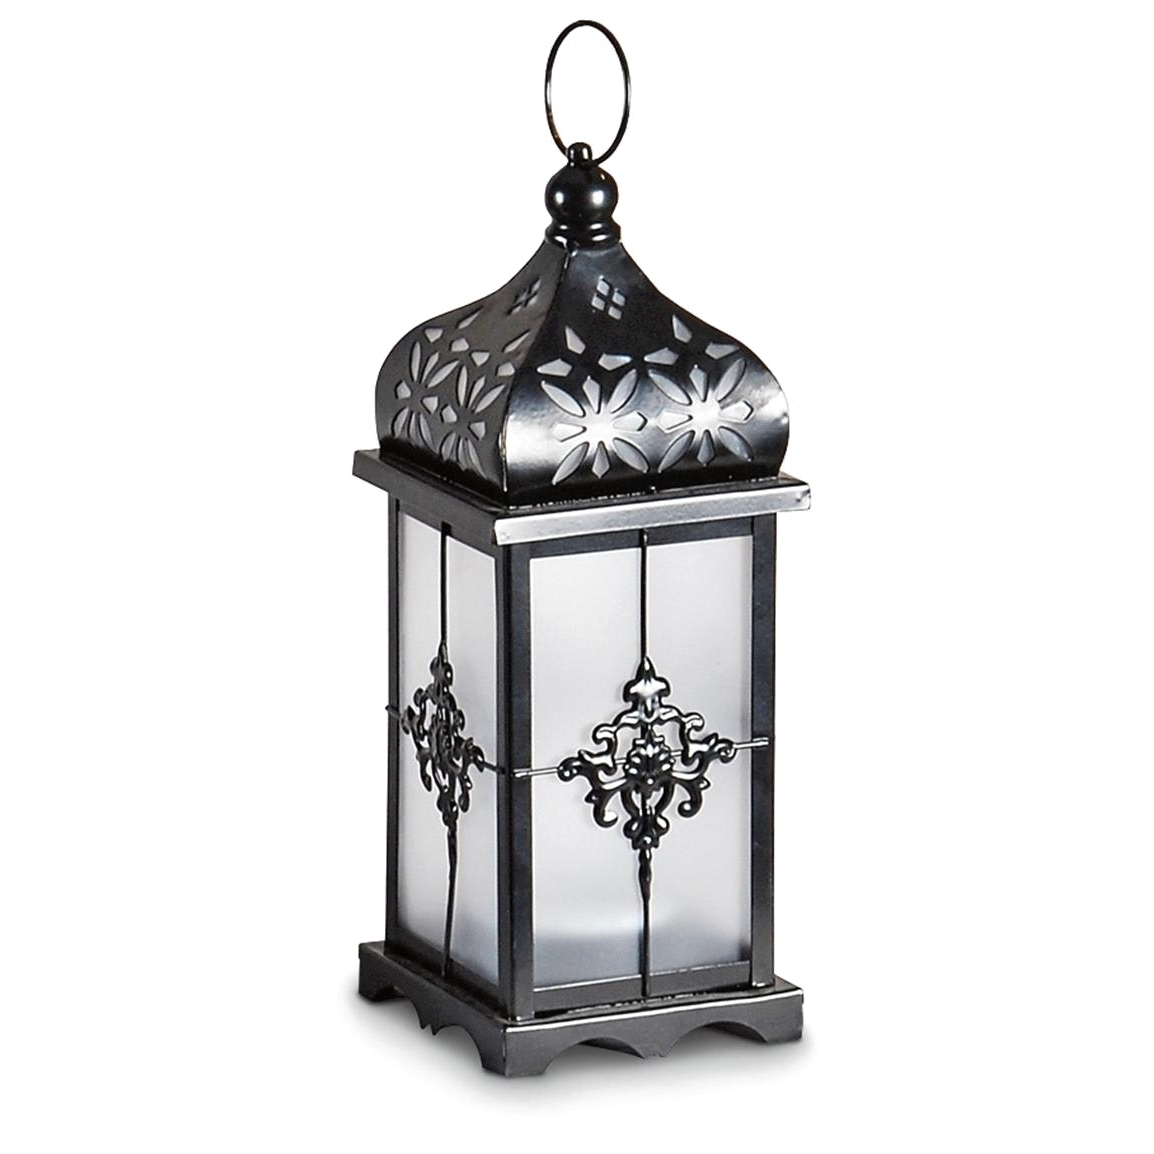 Solar Powered Outdoor Hanging Lanterns With Newest Solar Powered Outdoor Pendant Light – Outdoor Designs (View 17 of 20)